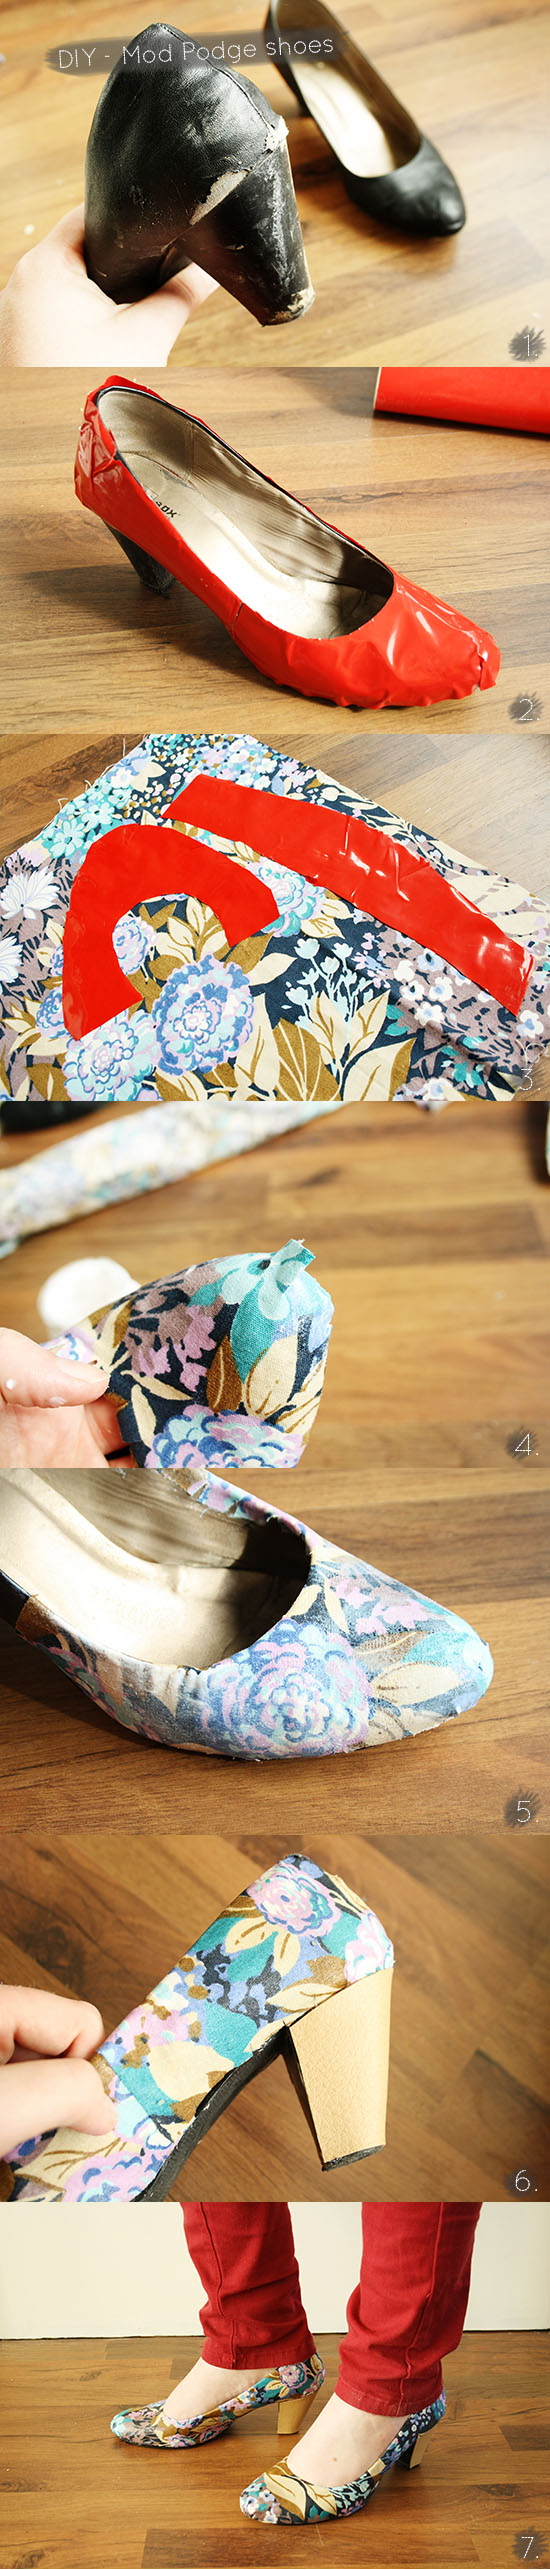 How to Mod Podge fabric on your shoes. An easy way to get the pattern for the fabric just right! @ By Wilma